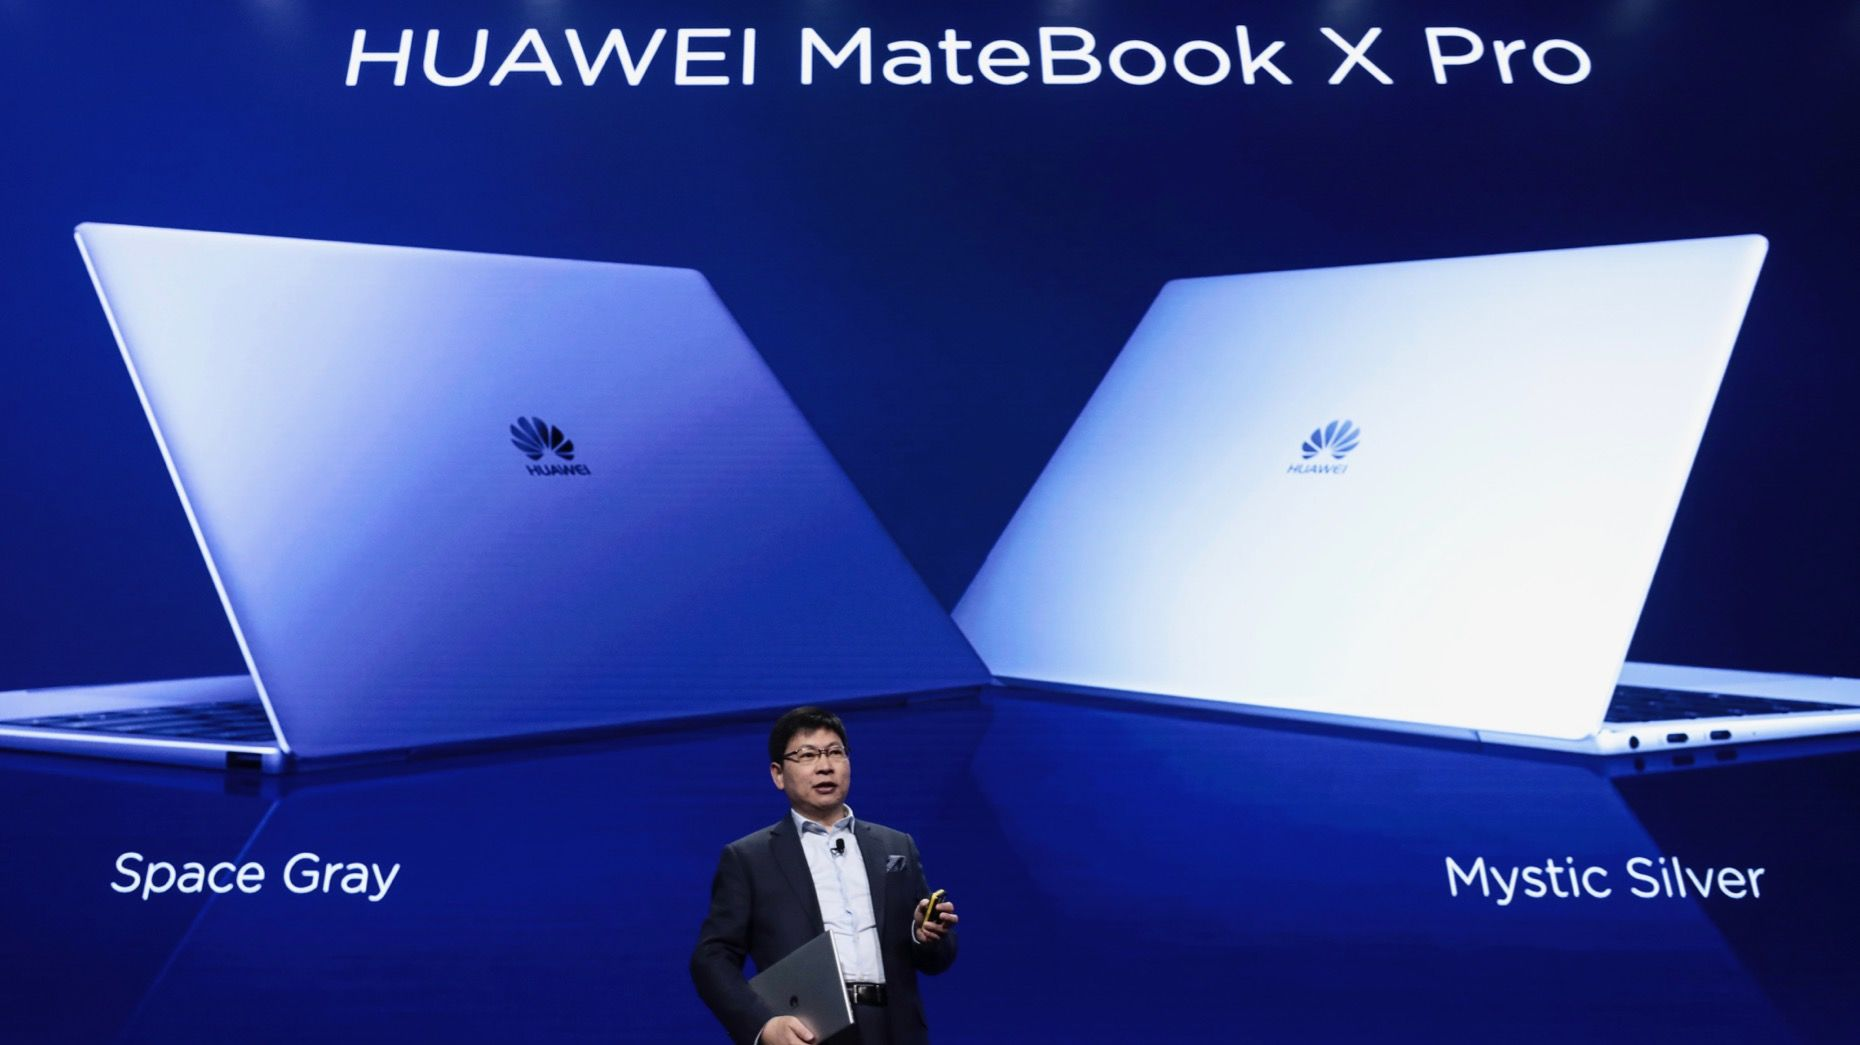 Richard Yu, CEO of Huawei's consumer group, presented the MateBook X Pro laptop in Barcelona last year.